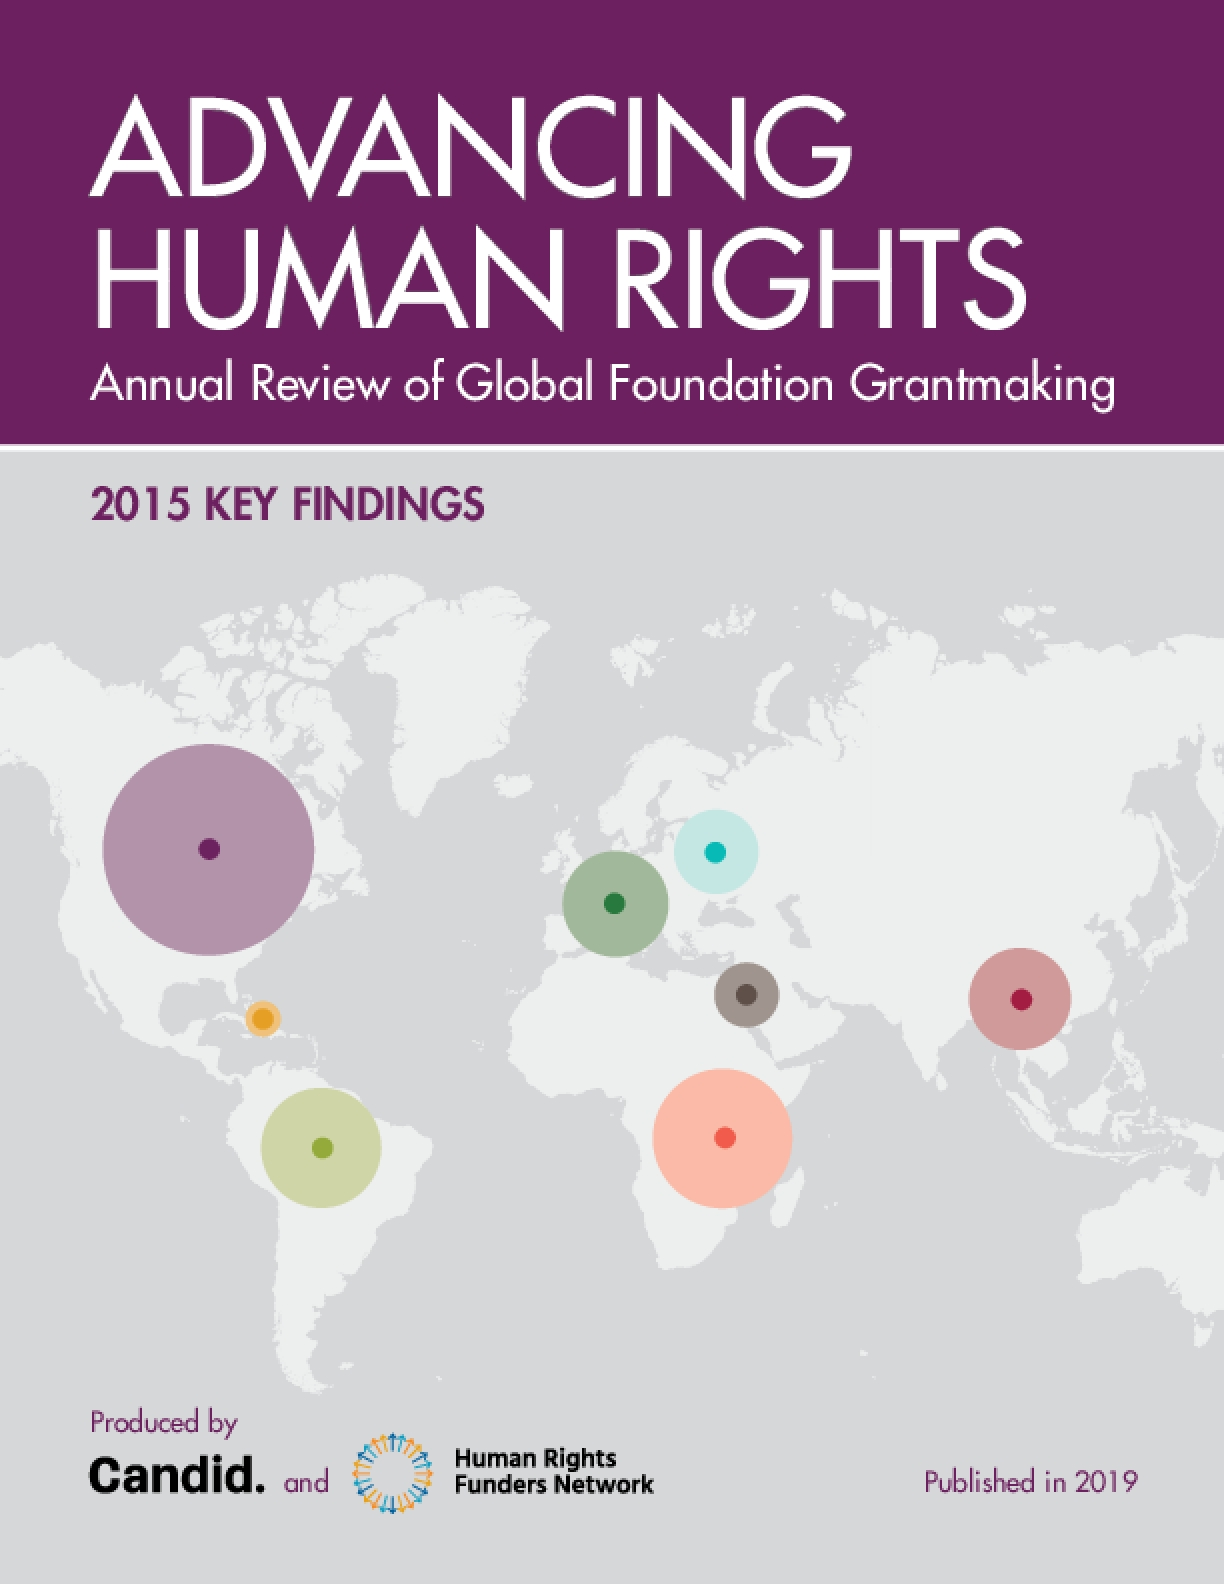 Advancing Human Rights Annual Review of Global Foundation Grantmaking: 2015 Key Findings